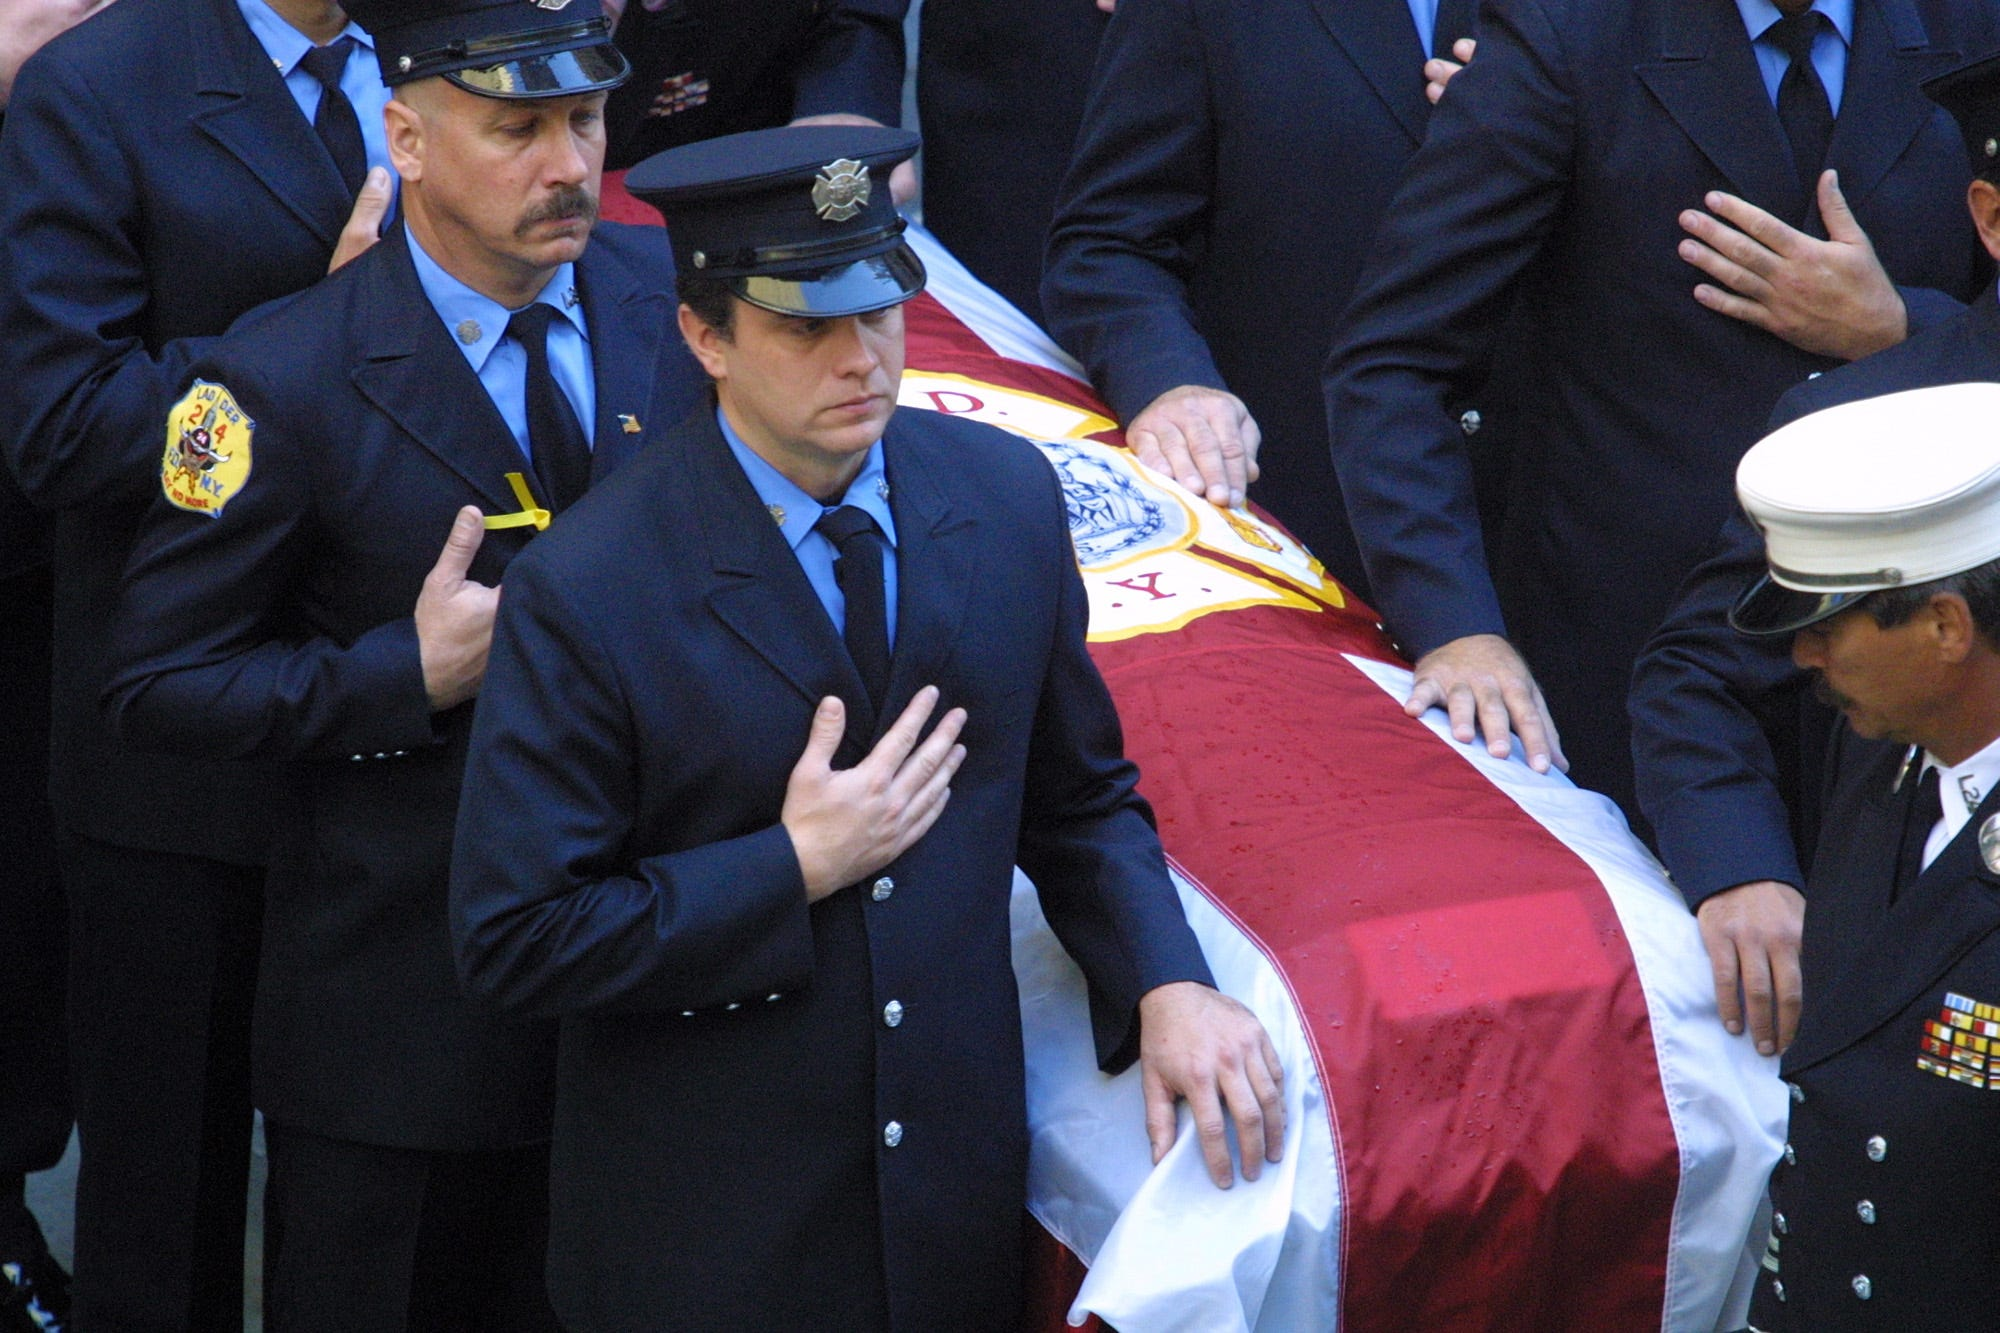 New York City Firefighter poll bearers attend to the casket of NYFD Chaplain Mychal Judge during a funeral mass at St. Francis Church on West 31st Street near 6th Ave. in New York City. Saturday, September 15, 2001.